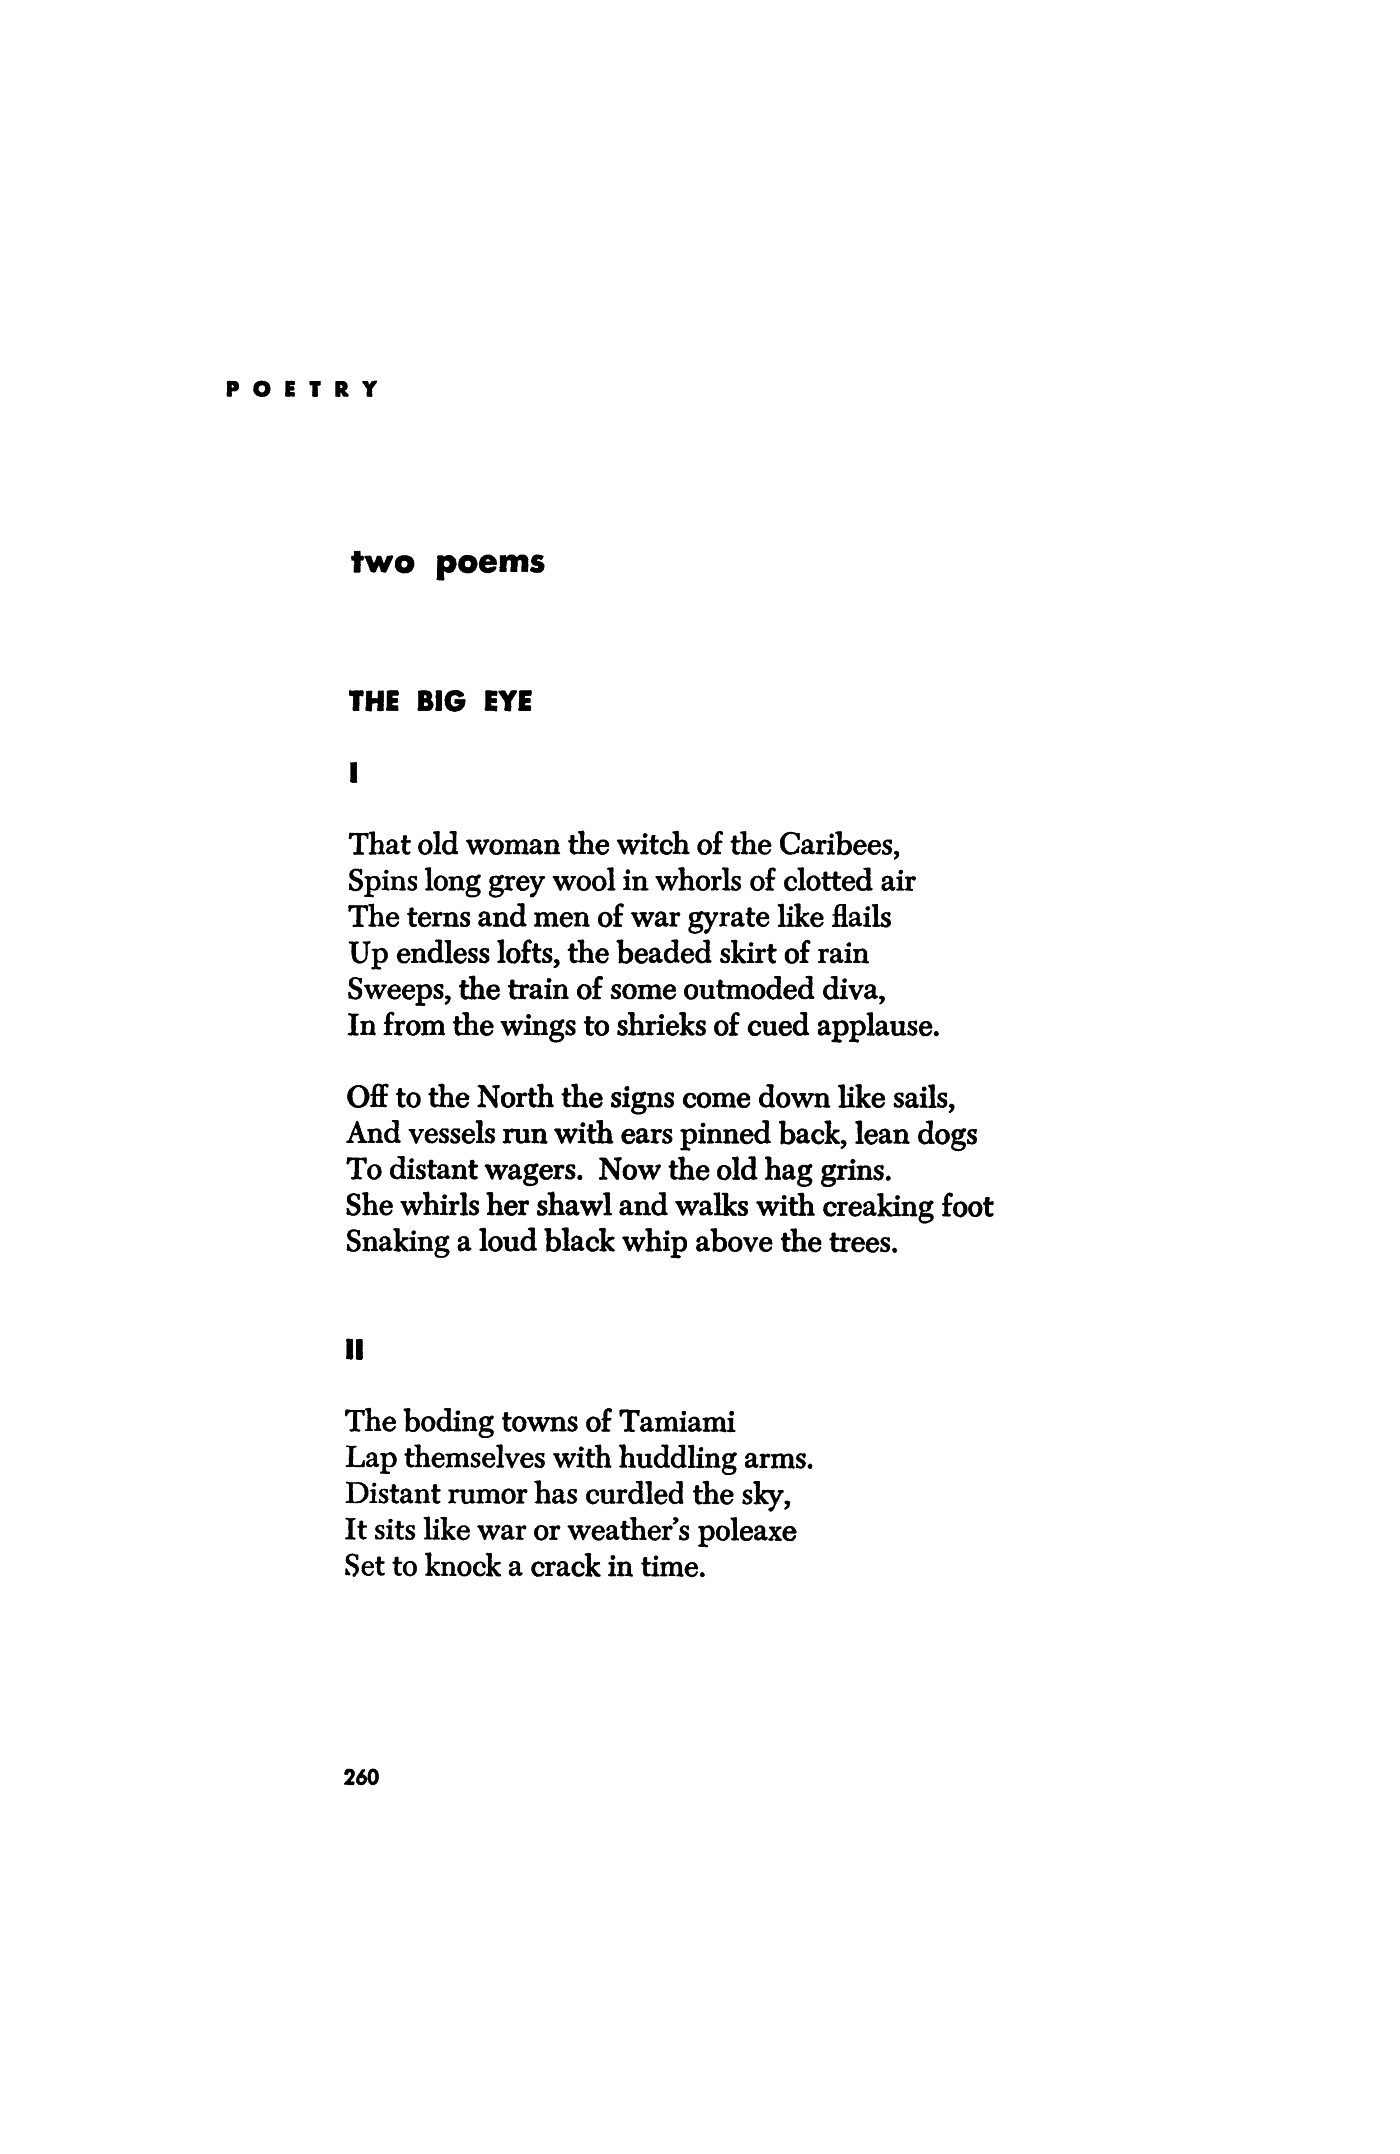 The Big Eye by Andrew Glaze | Poetry Magazine